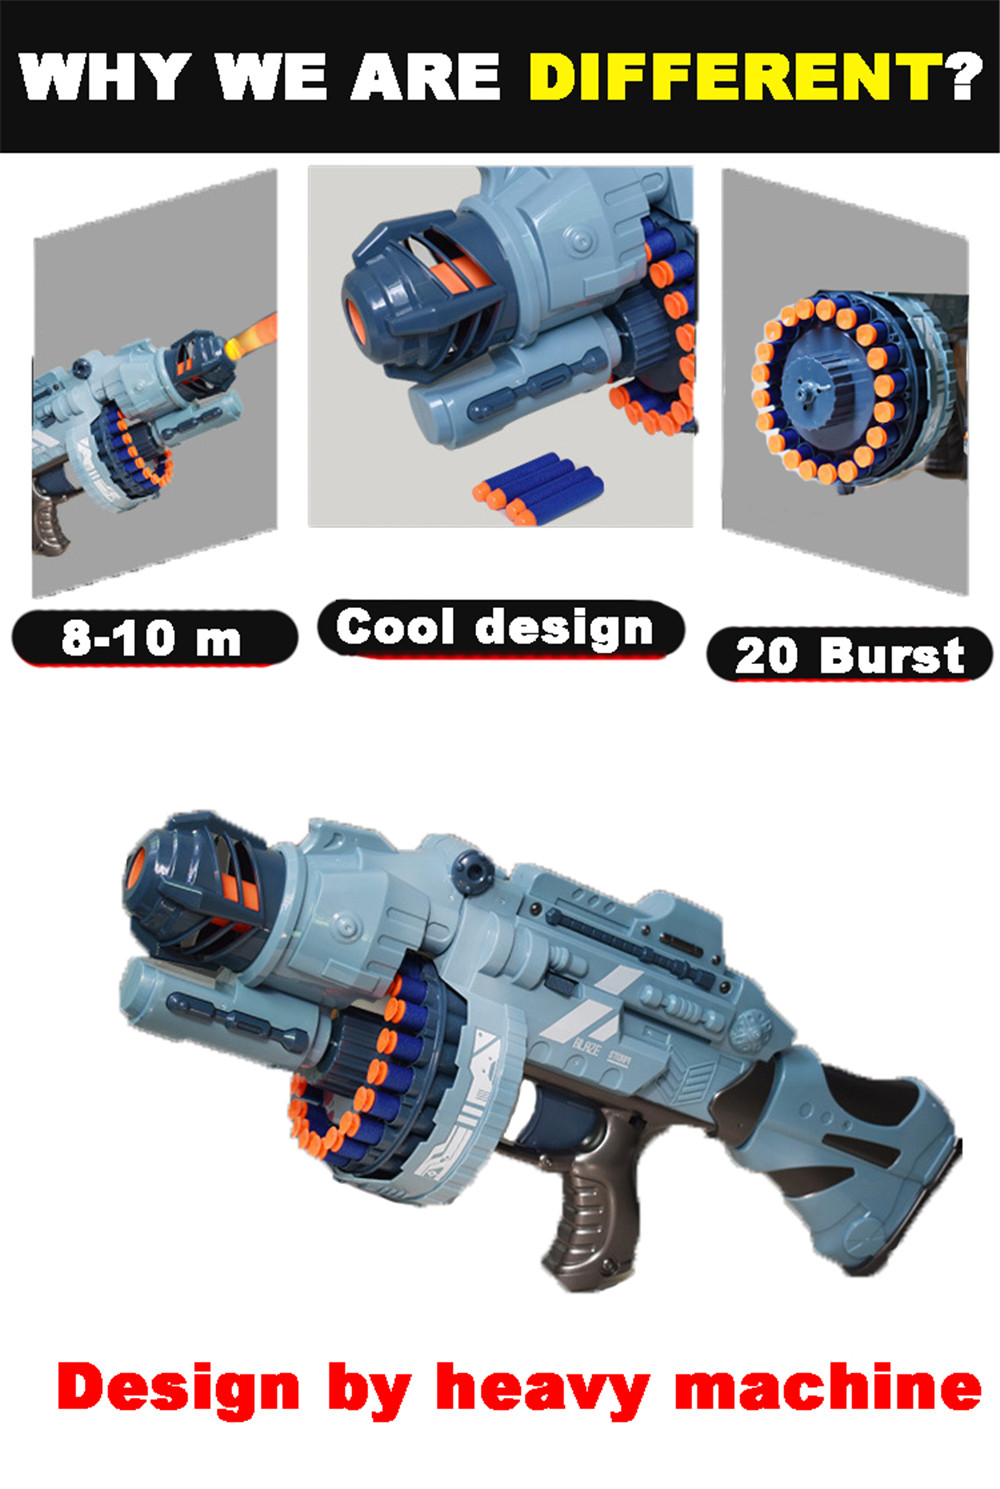 20 Repeating Machine Gun Plastic Airsoft Pistol Soft Bullet Boys Toy Outdoor CS Battle Game Gift Kids Toy